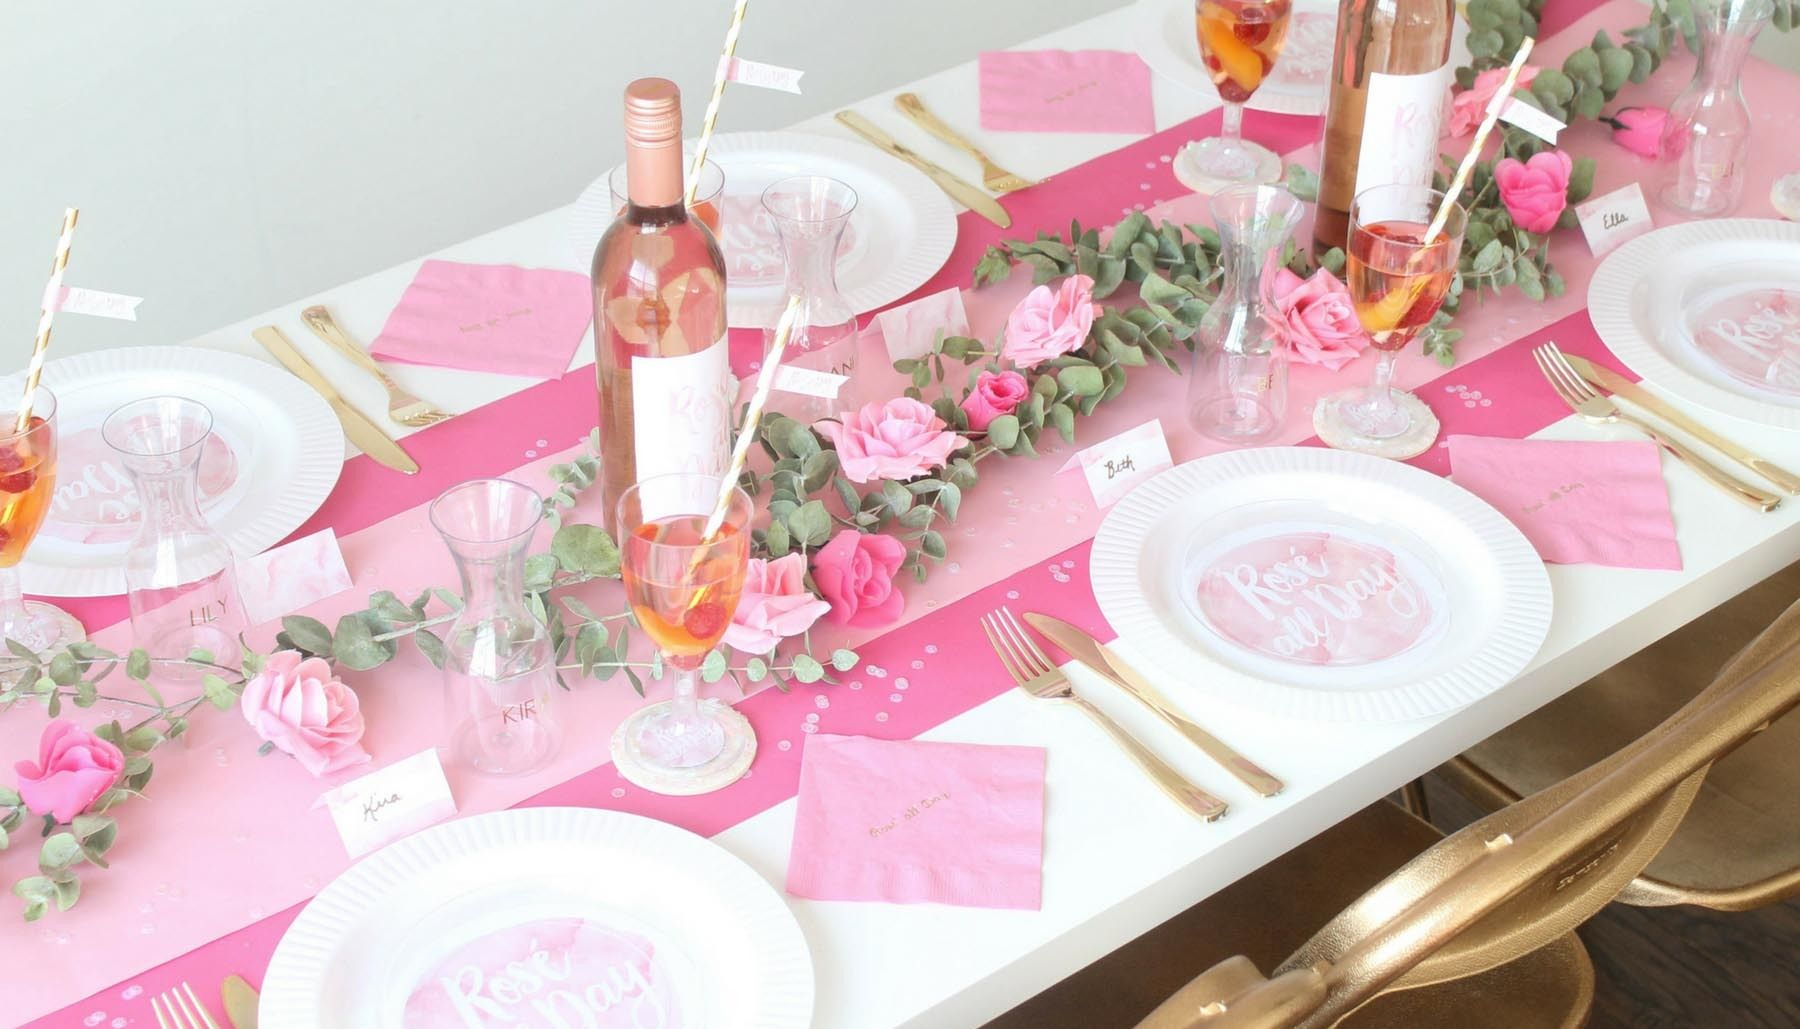 Rose All Day Bridal Shower Table Decor Bridal Shower Tables Rose Party Pink Table Decorations